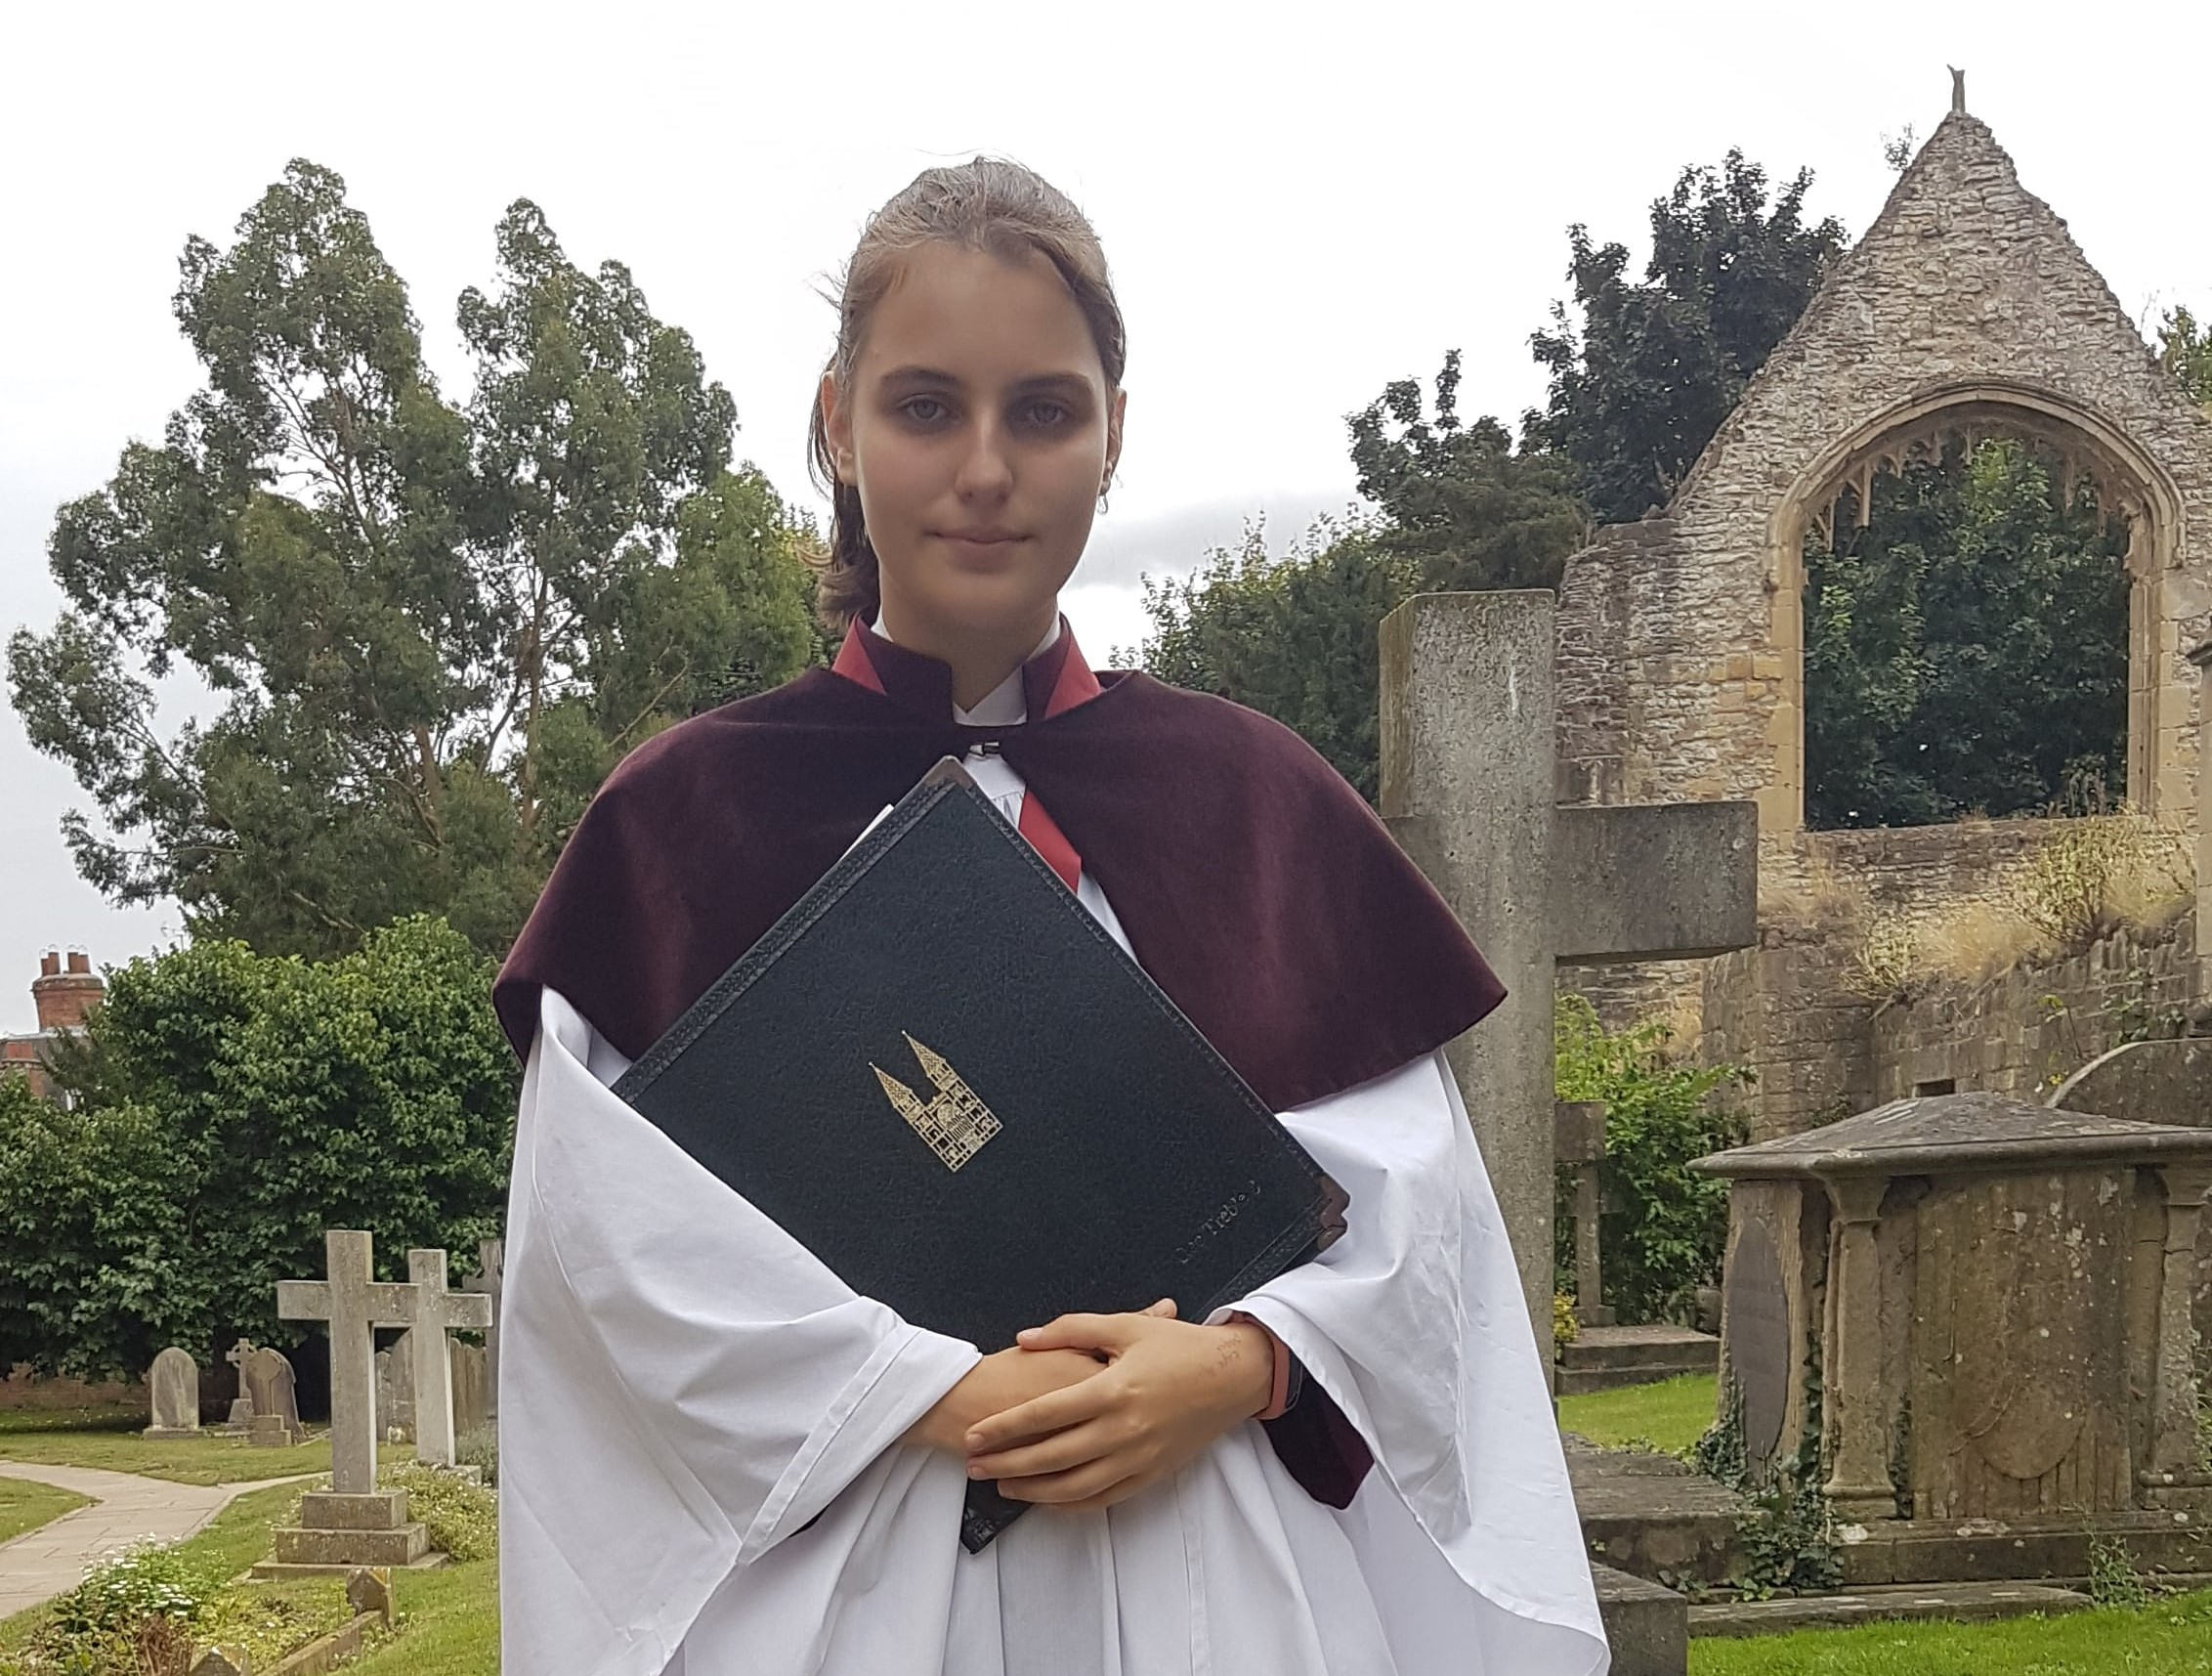 Southwell Minster appoints first head girl chorister in its 1,000 year history